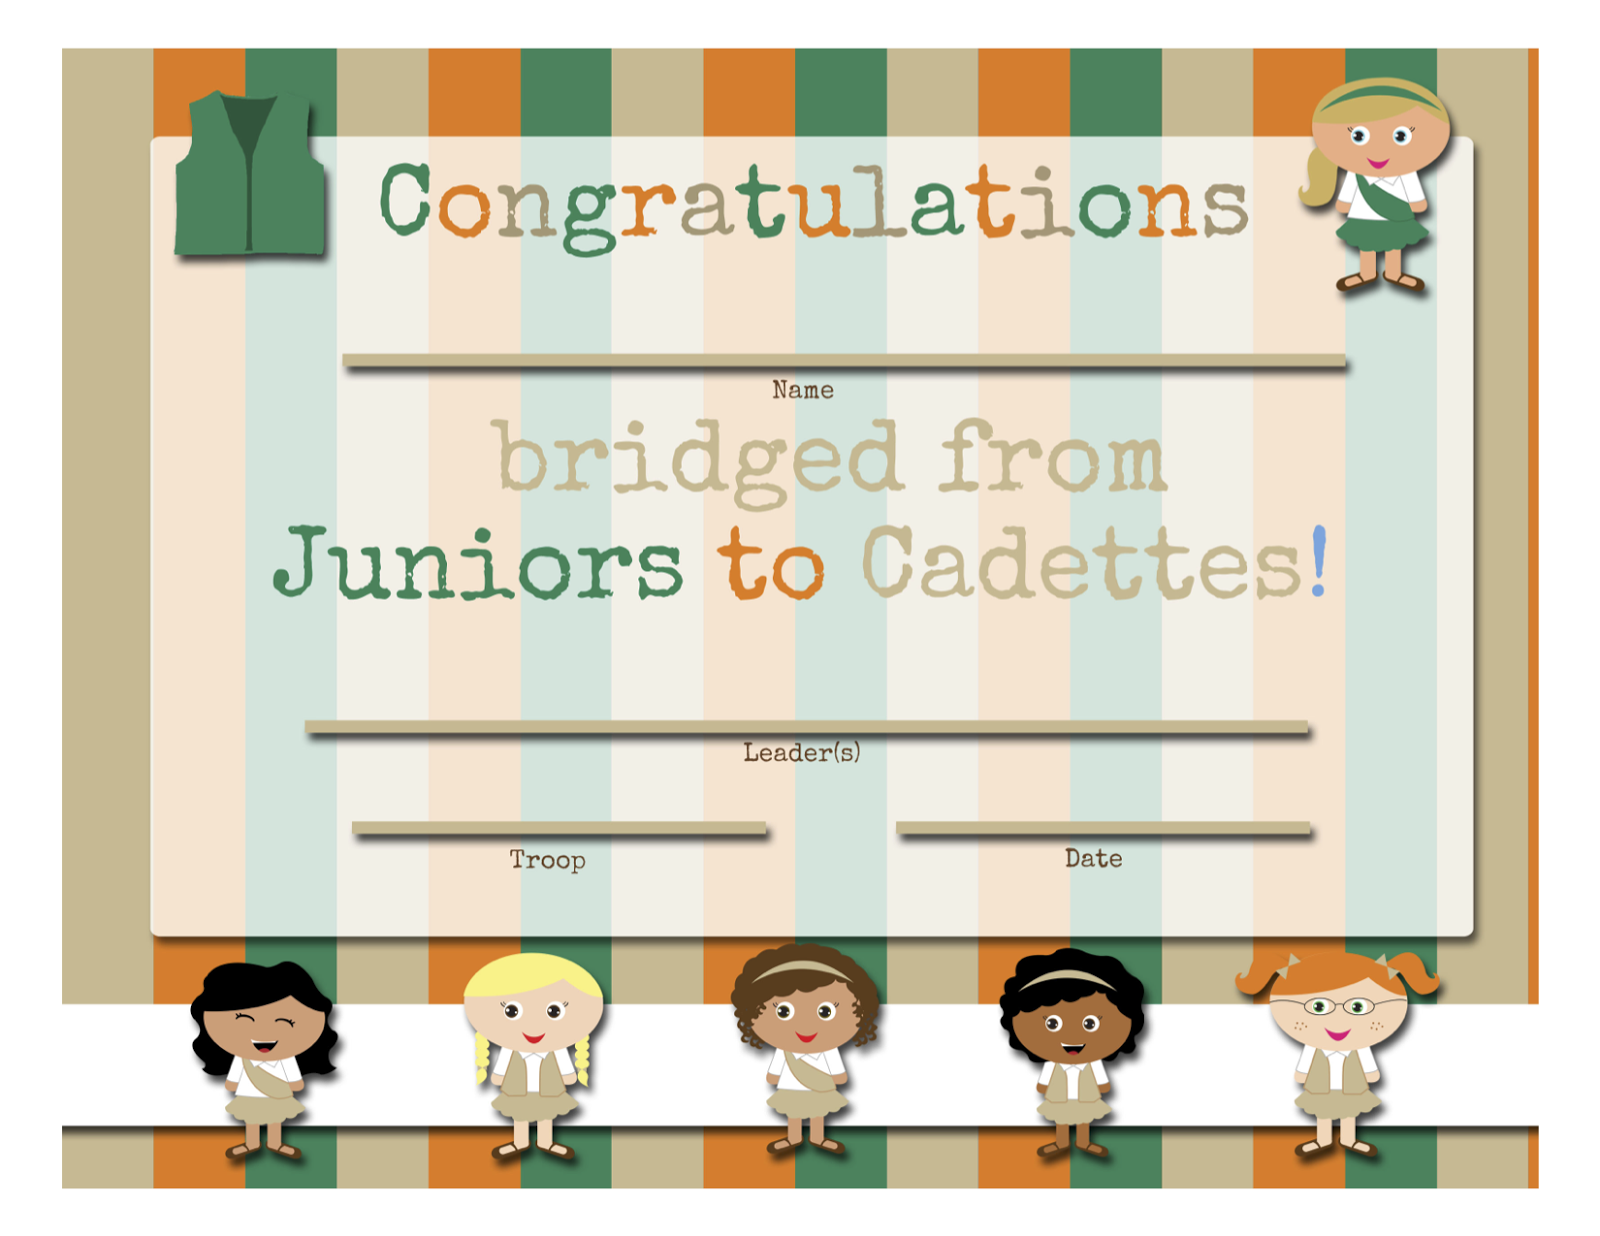 photograph relating to Girl Scout Certificates Printable Free named My Contemporary Types: Lady Scouts: Cost-free Printable Bridging